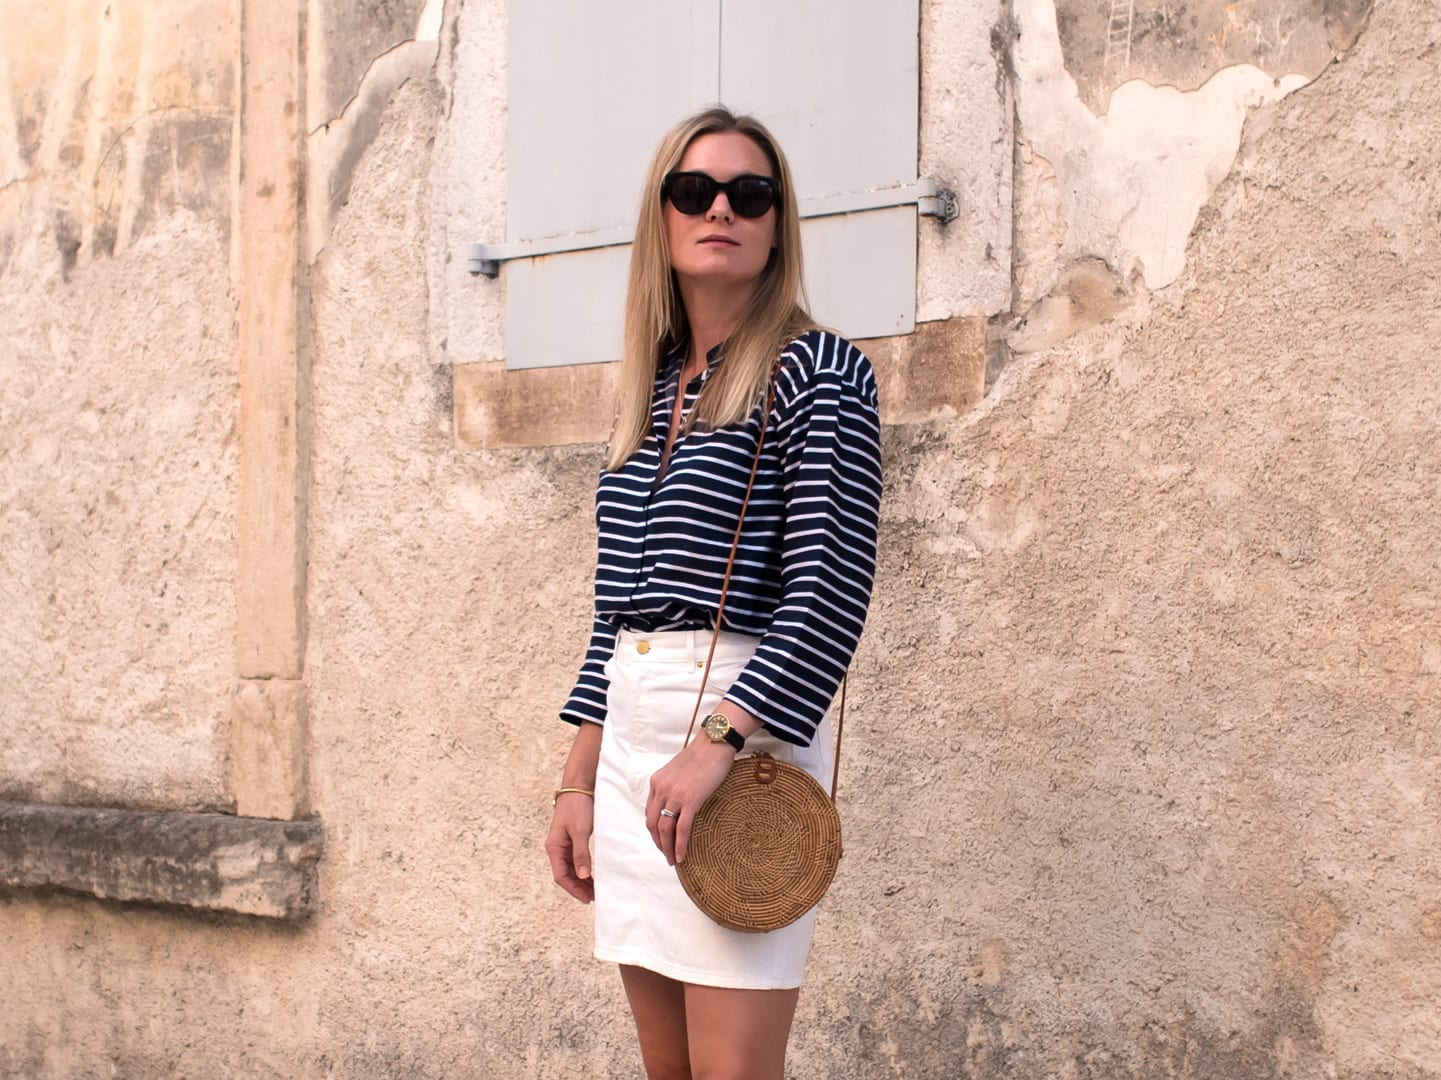 Bale, Croatia | Mads Norgaard Stripe Top, White Denim Skirt & Red Espadrilles